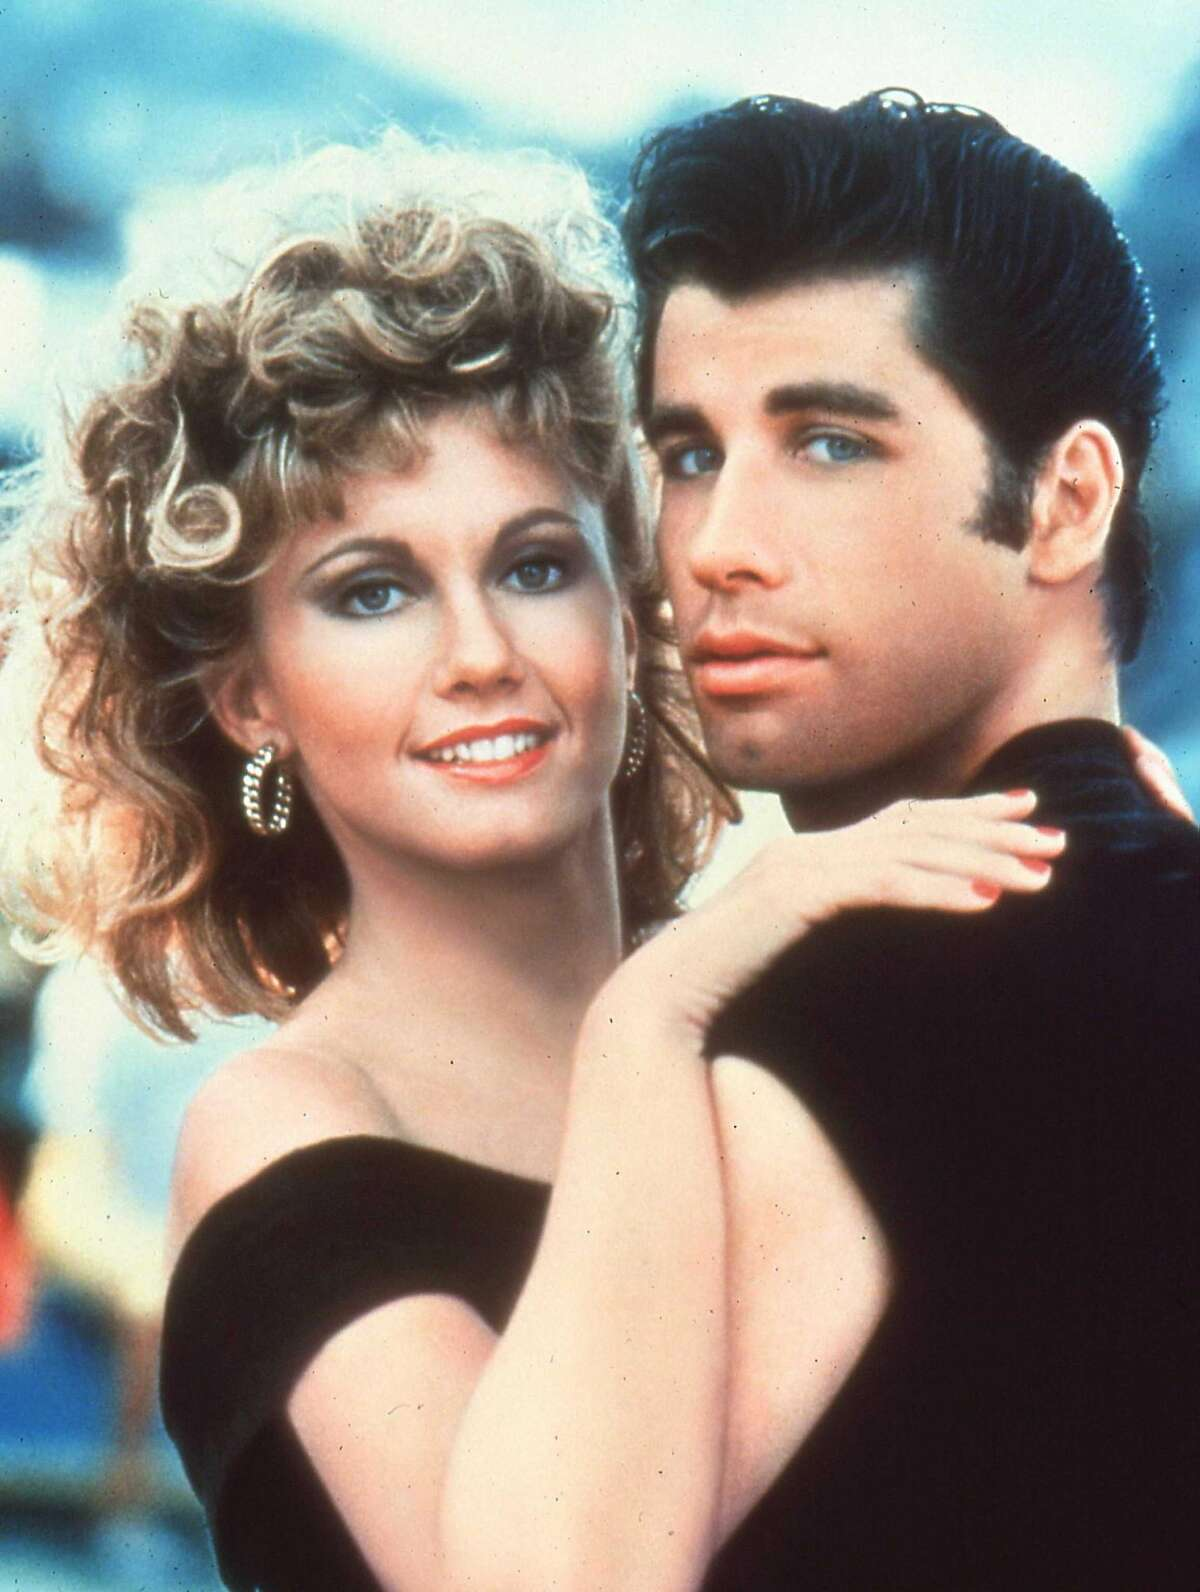 """""""Grease"""" (1978) Little Man rating: Empty Chair (we think) The Chronicle's review of this still-beloved musical doesn't include a Little Man, but let's just say it doesn't leave much room for doubt: """"What is the audience for 'Grease?'"""" writes John L. Wasserman. """"What is the world moron population?"""" While """"Grease"""" won't rival """"Citizen Kane"""" for greatest movie of all time, and you might say it's just a series of lovable dance scenes, it turned out to have a large audience indeed, and people still dress up as John Travolta's and Olivia Newton-John's characters. We'll add this line from Wasserman for good measure: """"The screenplay is a pre-pubescent shambles, the direction is by acne out of disposable douches, the dubbing and looping of the songs is painfully obvious, the characterizations are generally repulsive and the whole thing is utterly without style."""""""